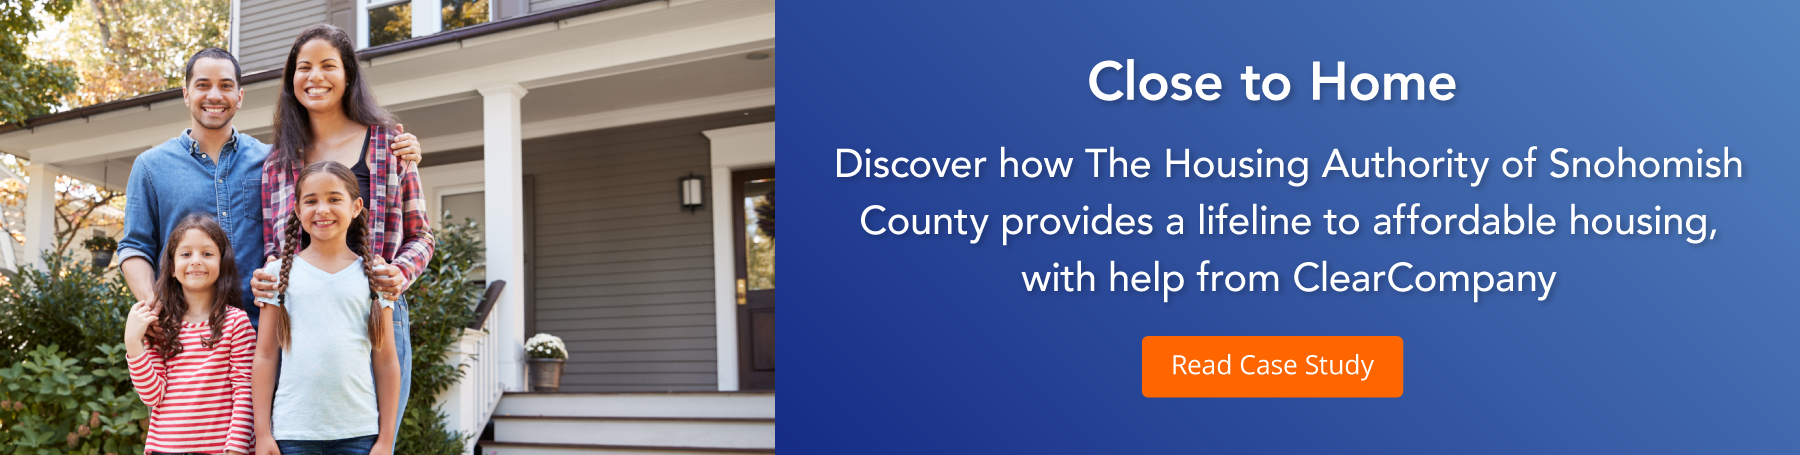 housing-authority-snohomish-county-affordable-housing-clearcompany-case-study-cta